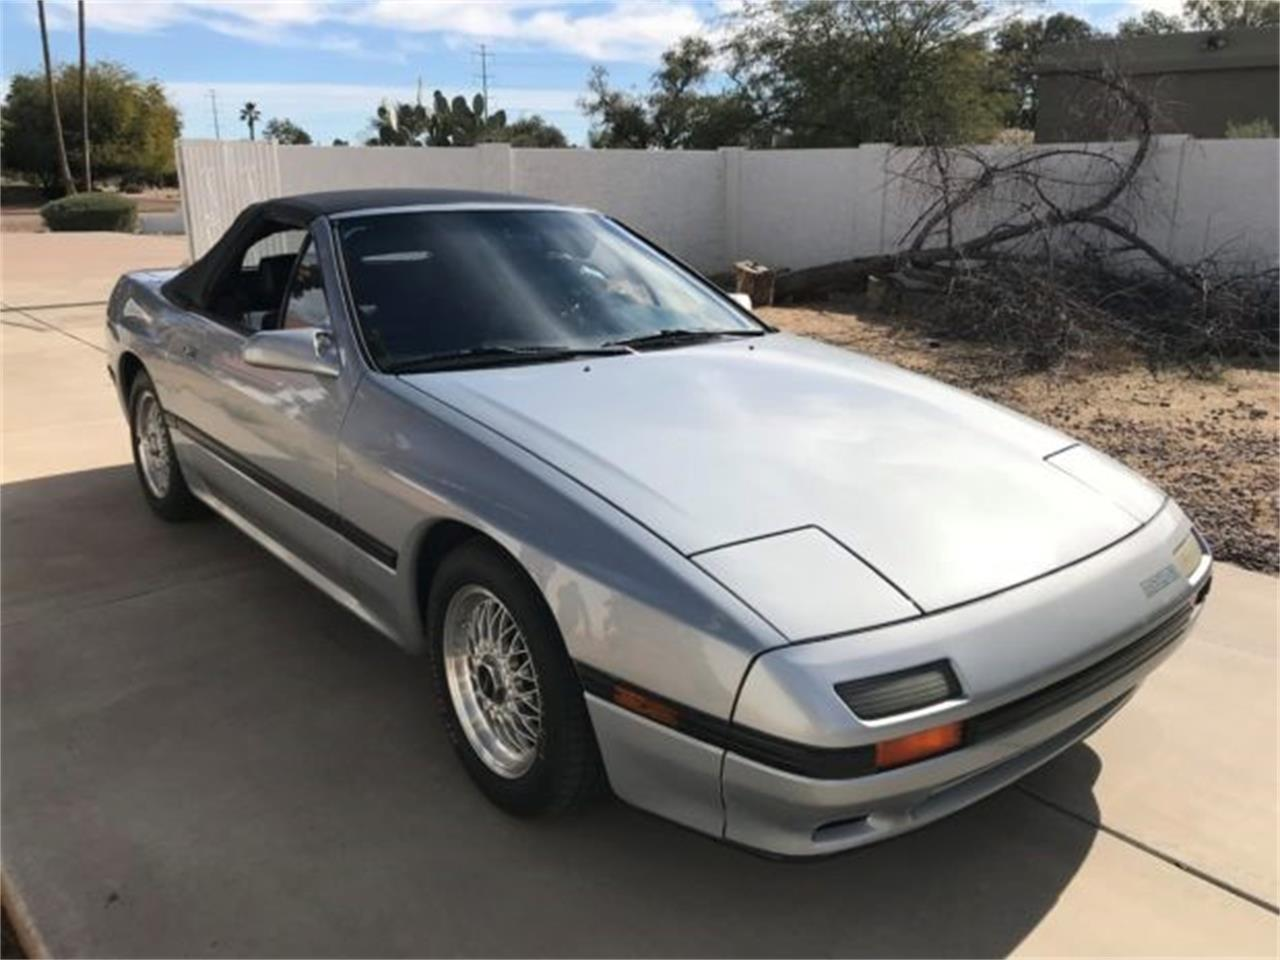 Large Picture of 1988 RX-7 located in Fontana California - $9,995.00 Offered by a Private Seller - PMKU